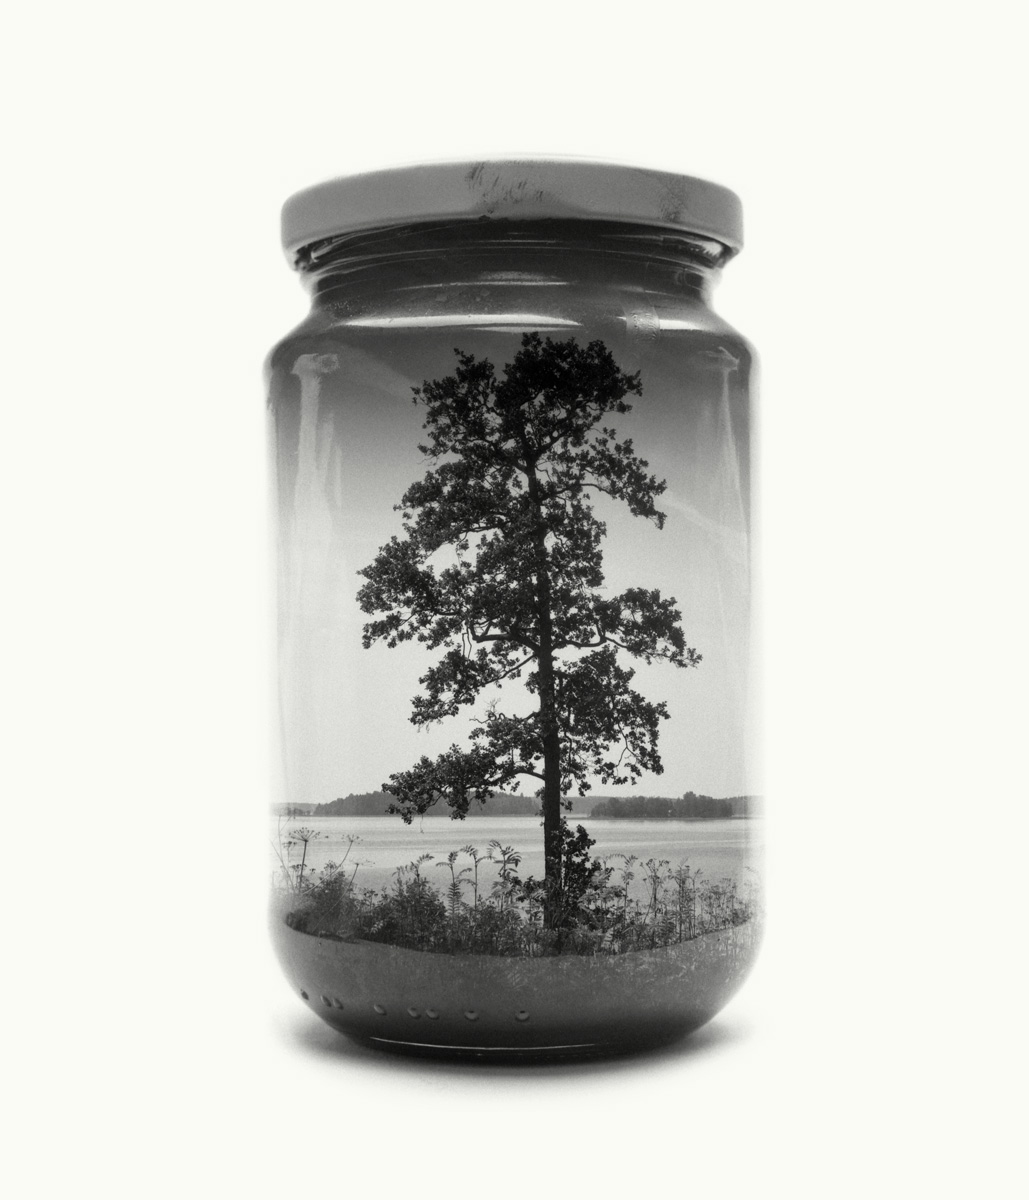 Christoffer Relander has been working on a new series of analog multiple exposures.